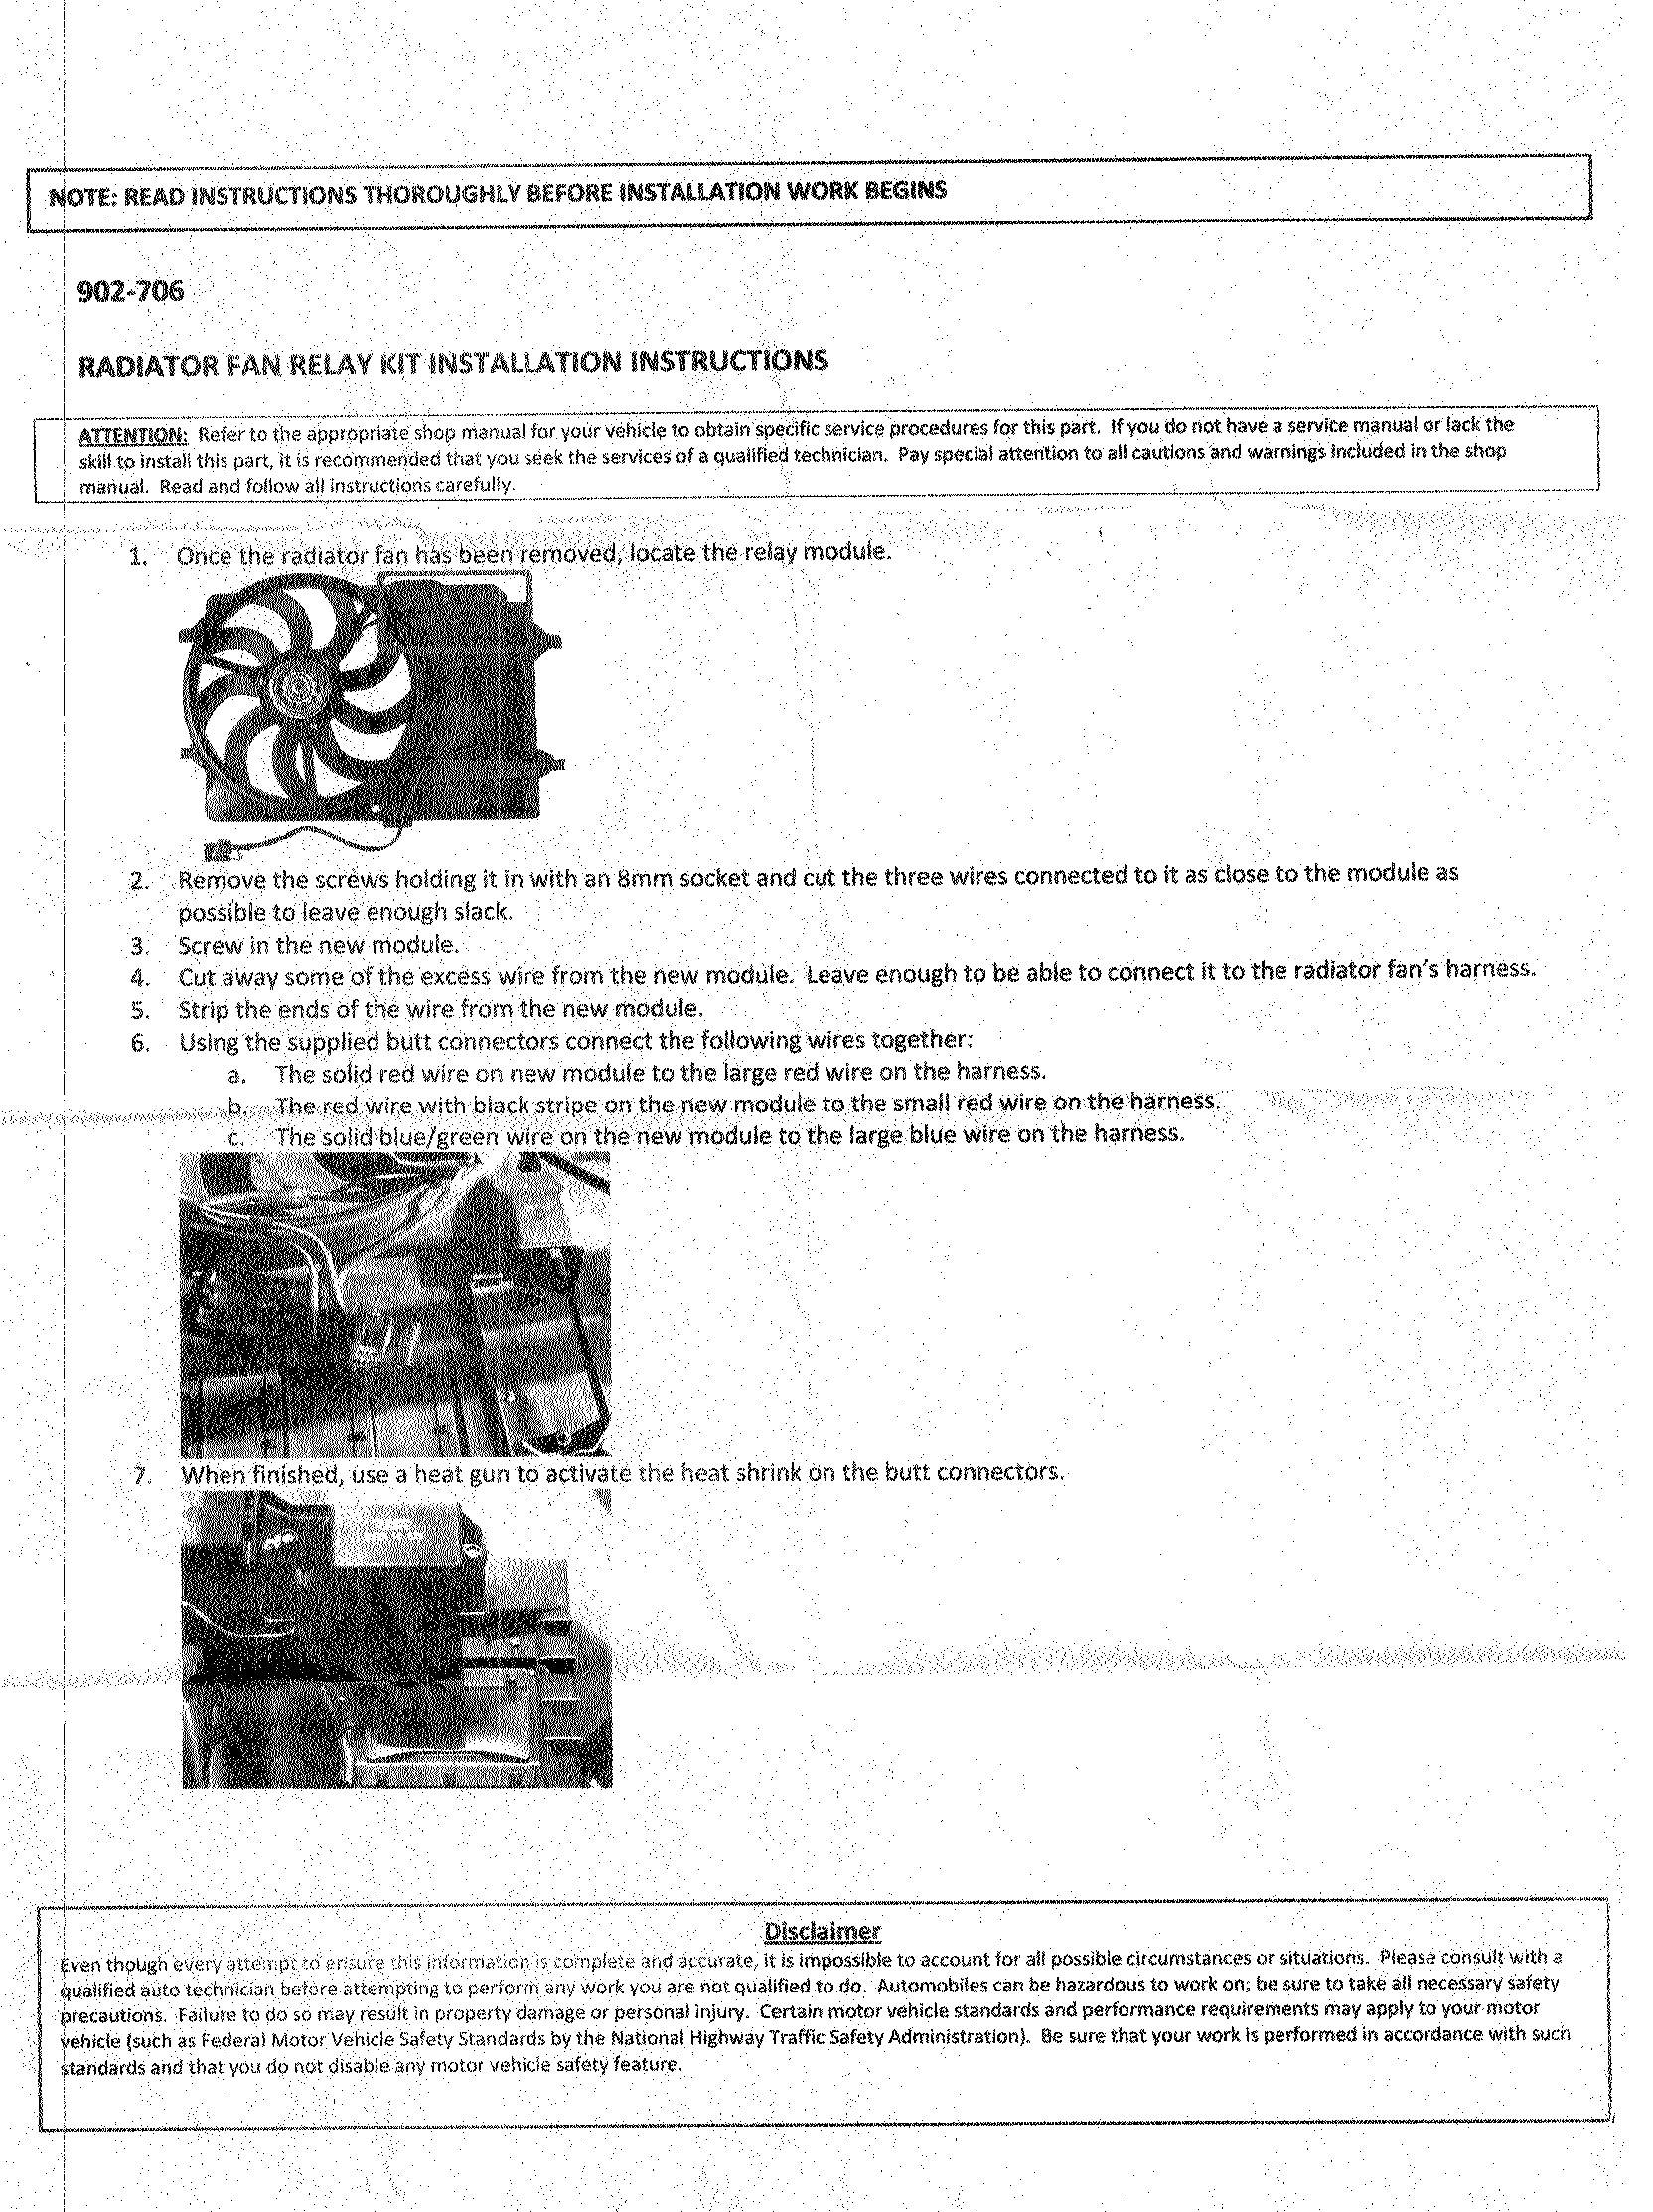 Radiator Fan Relay Kit Sante Blog Electric Diagram Furthermore Ls1 Cooling Wiring Scanned Instructions Zoom In For A Better Read Directions Note They Say That Dorman Supply S